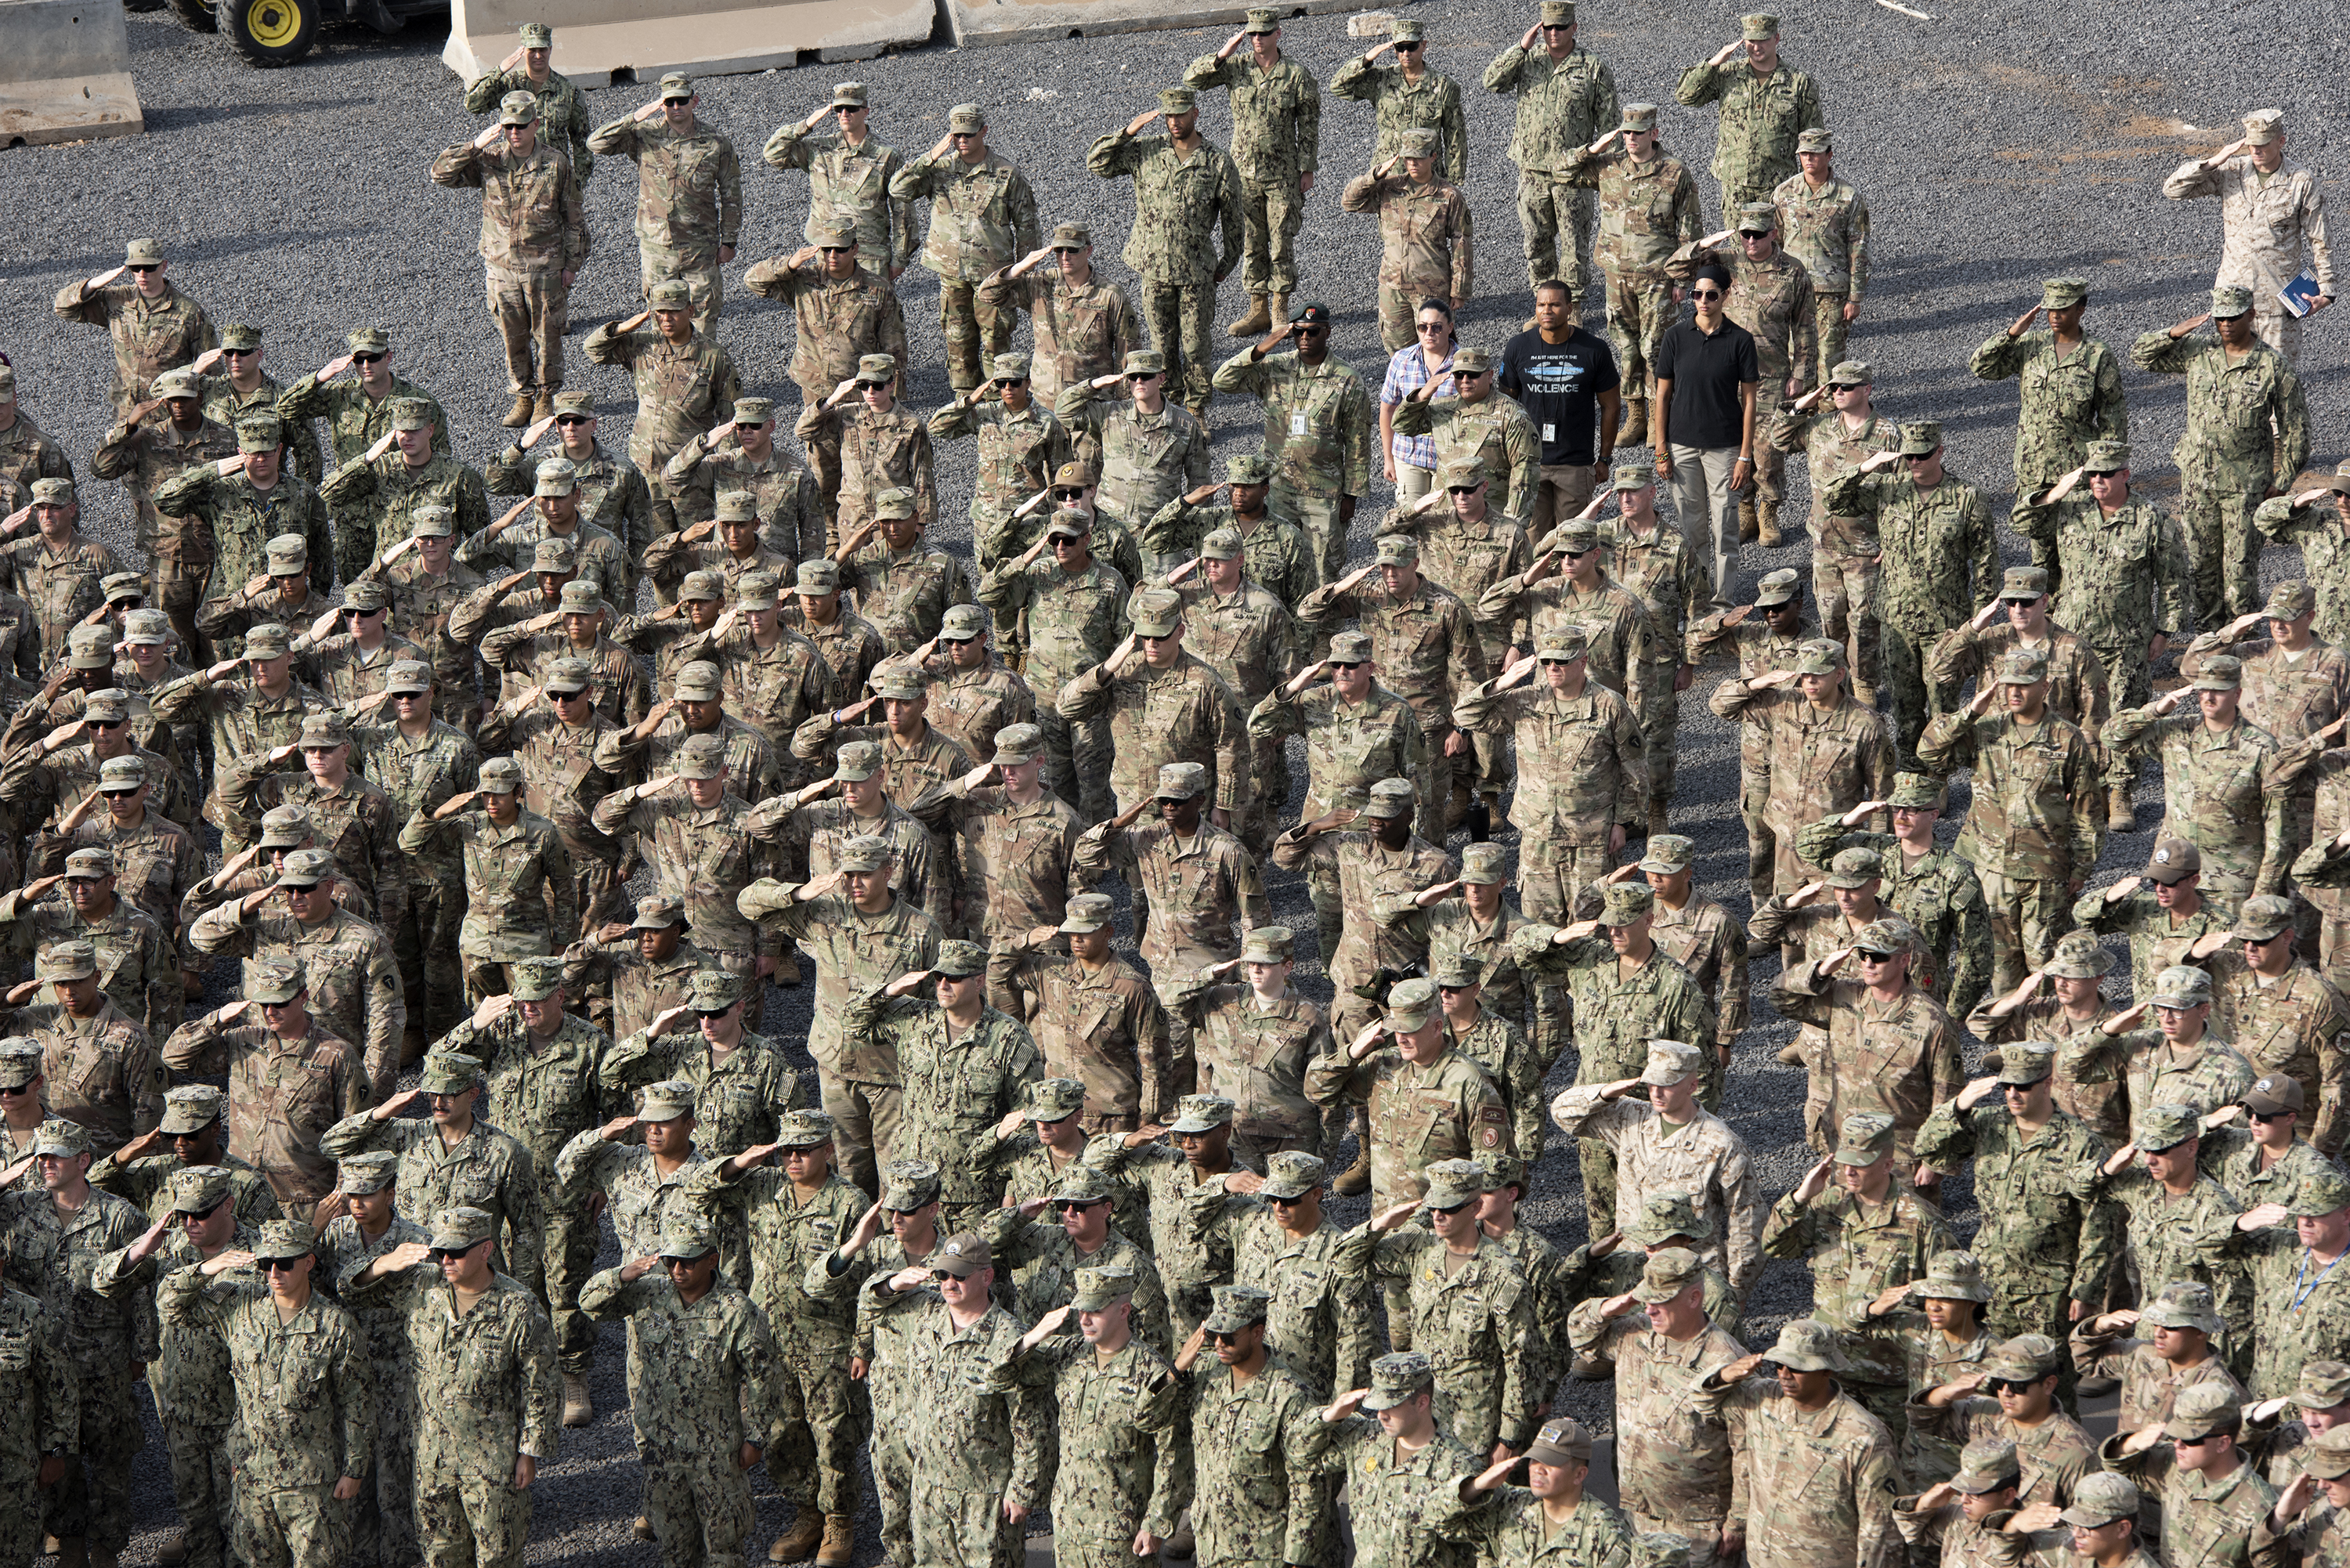 U.S. Service members deployed to the Horn of Africa salute during a 9/11 remembrance ceremony on Camp Lemonnier, Djibouti, Sept. 11, 2018. The ceremony honored those who lost their lives in New York City, Washington D.C. and Pennsylvania 17 years ago. (U.S. Air National Guard photo by Master Sgt. Sarah Mattison)